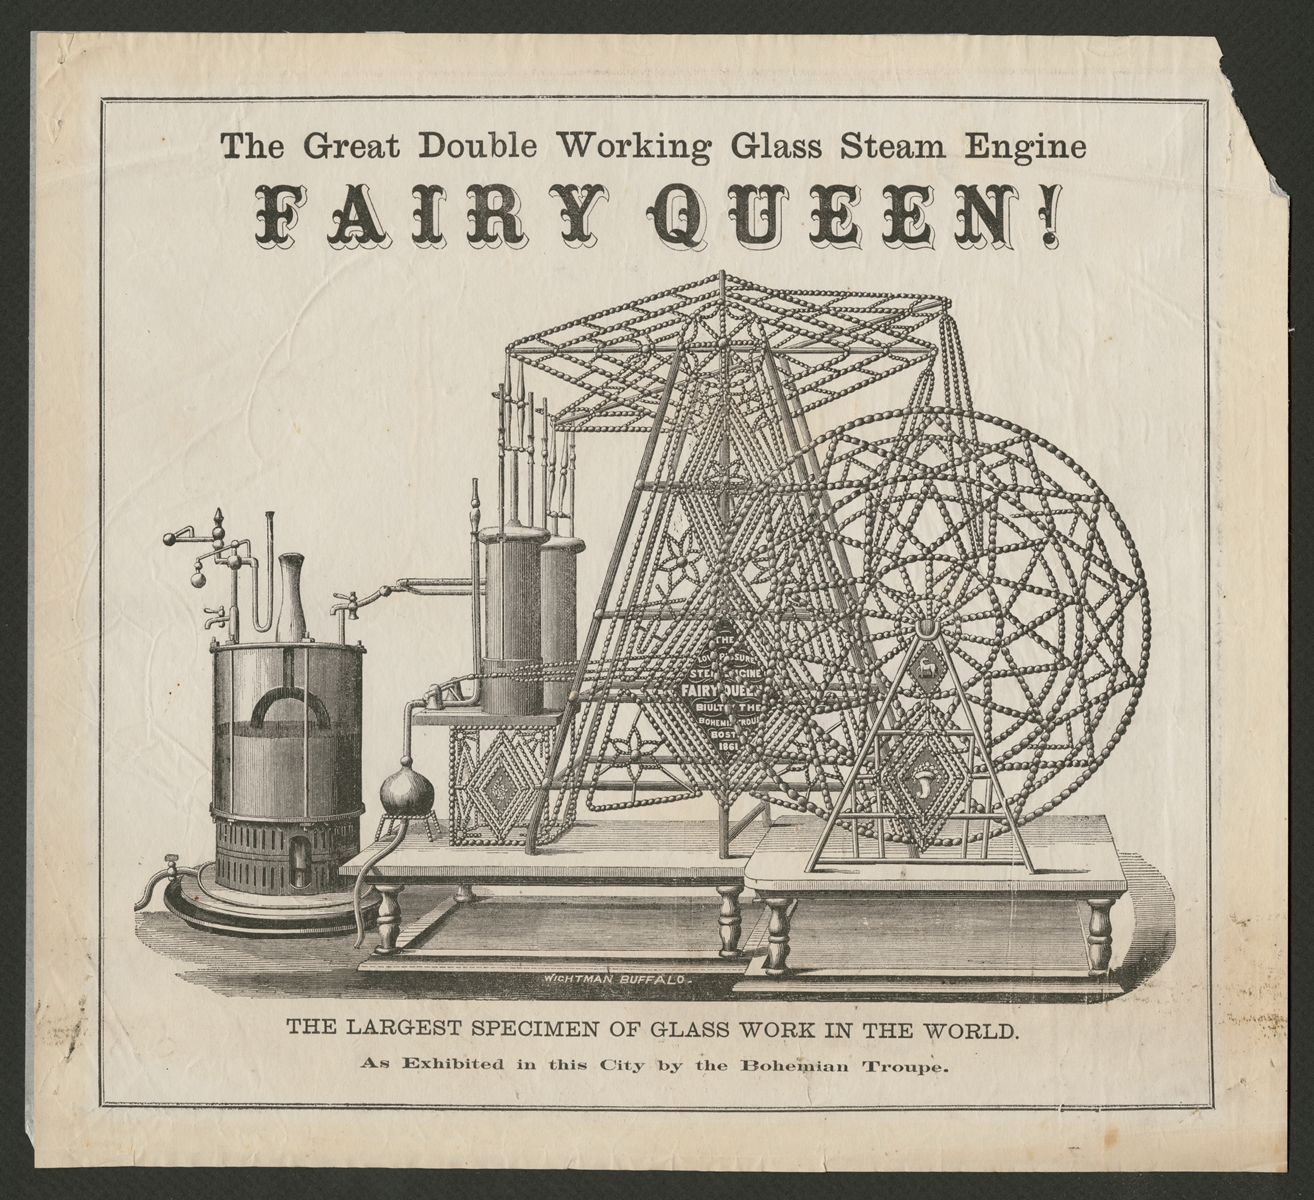 Advertisement for glass steam engine